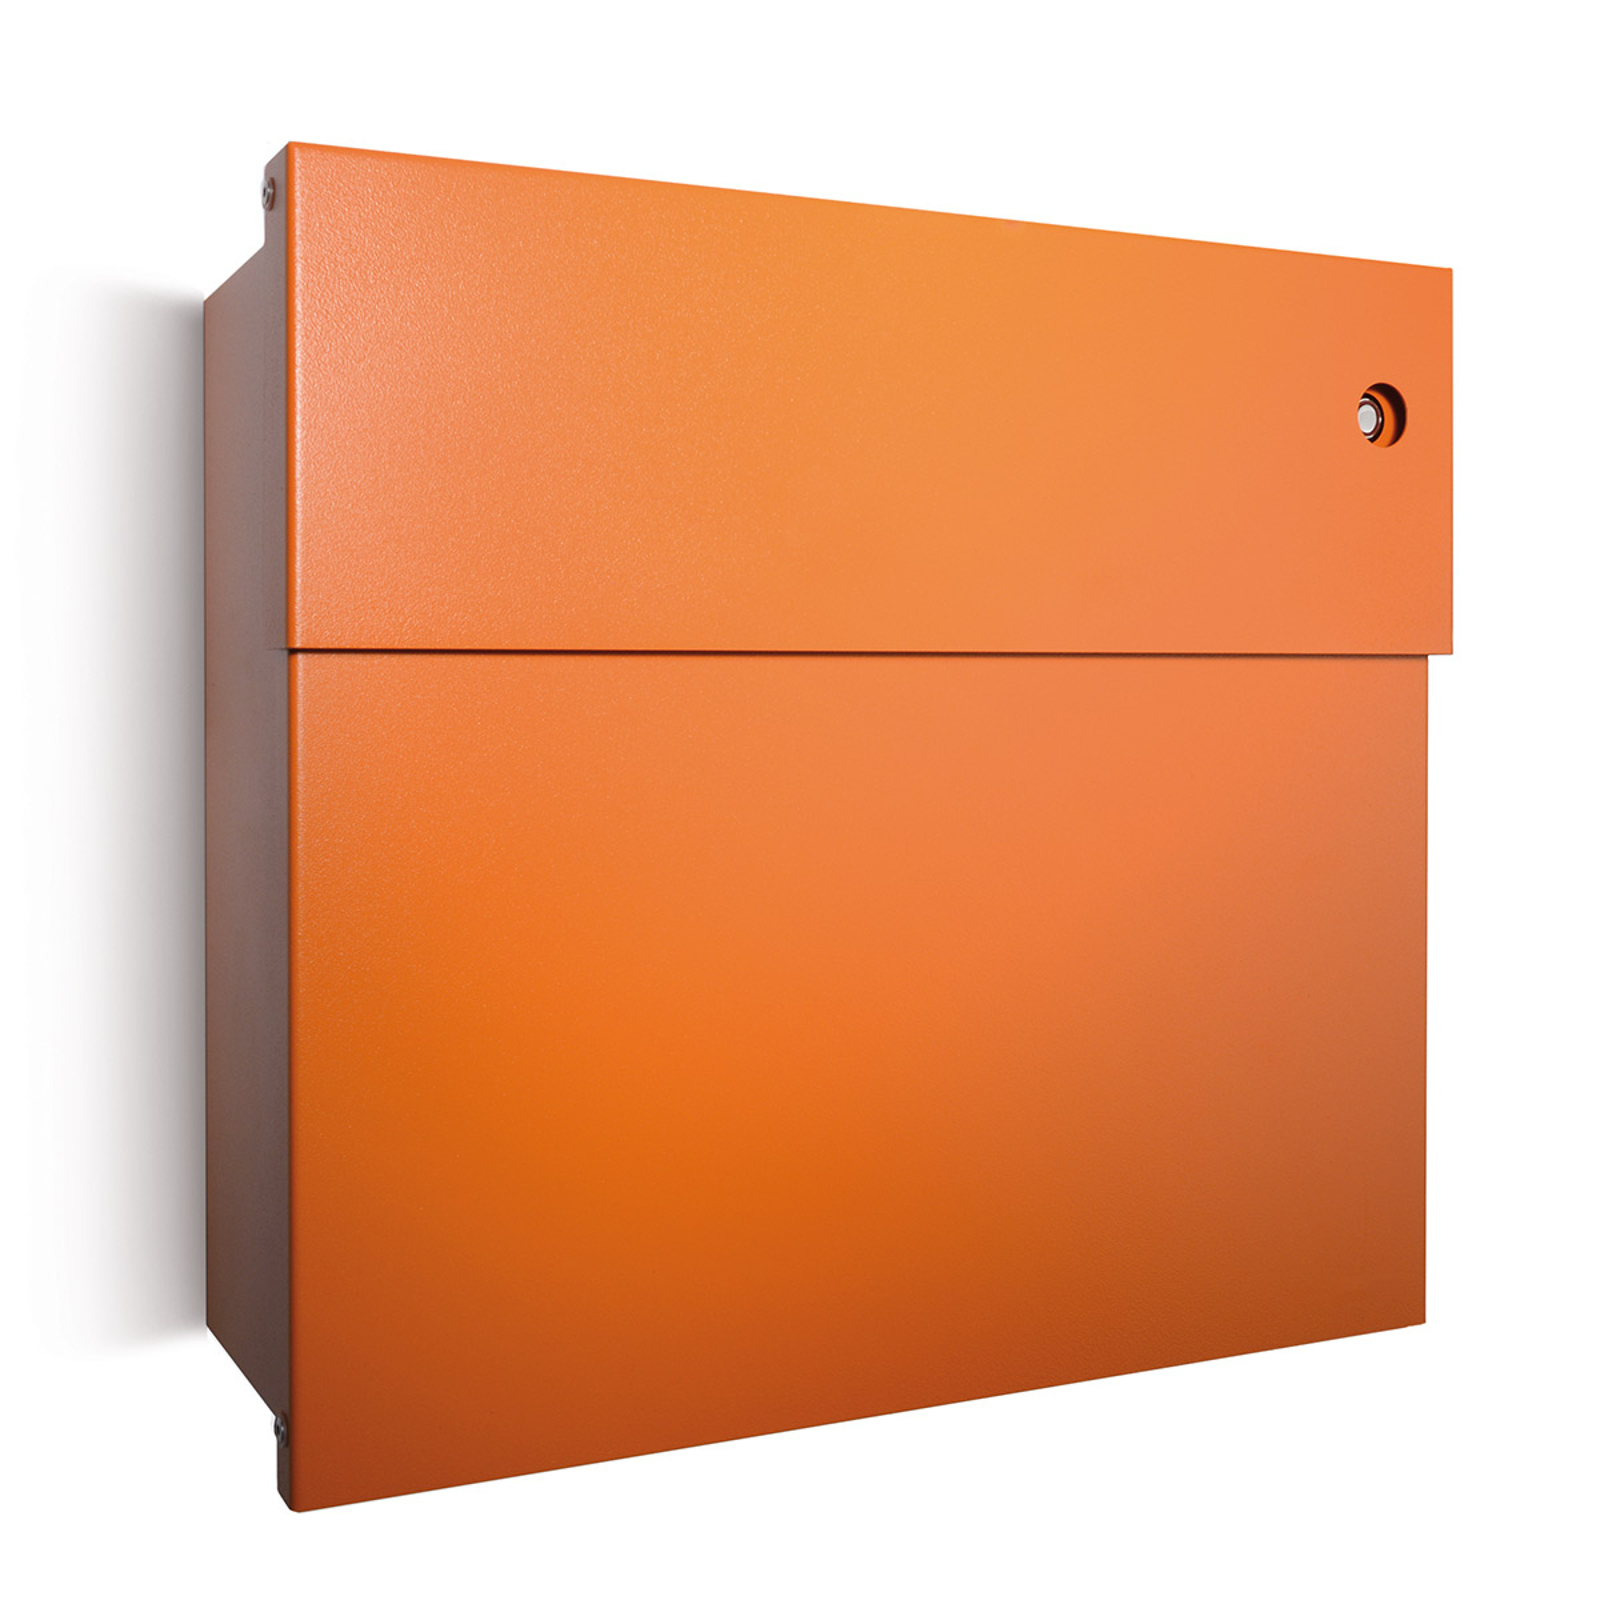 Letterman IV letterbox, red doorbell, orange_1057143_1